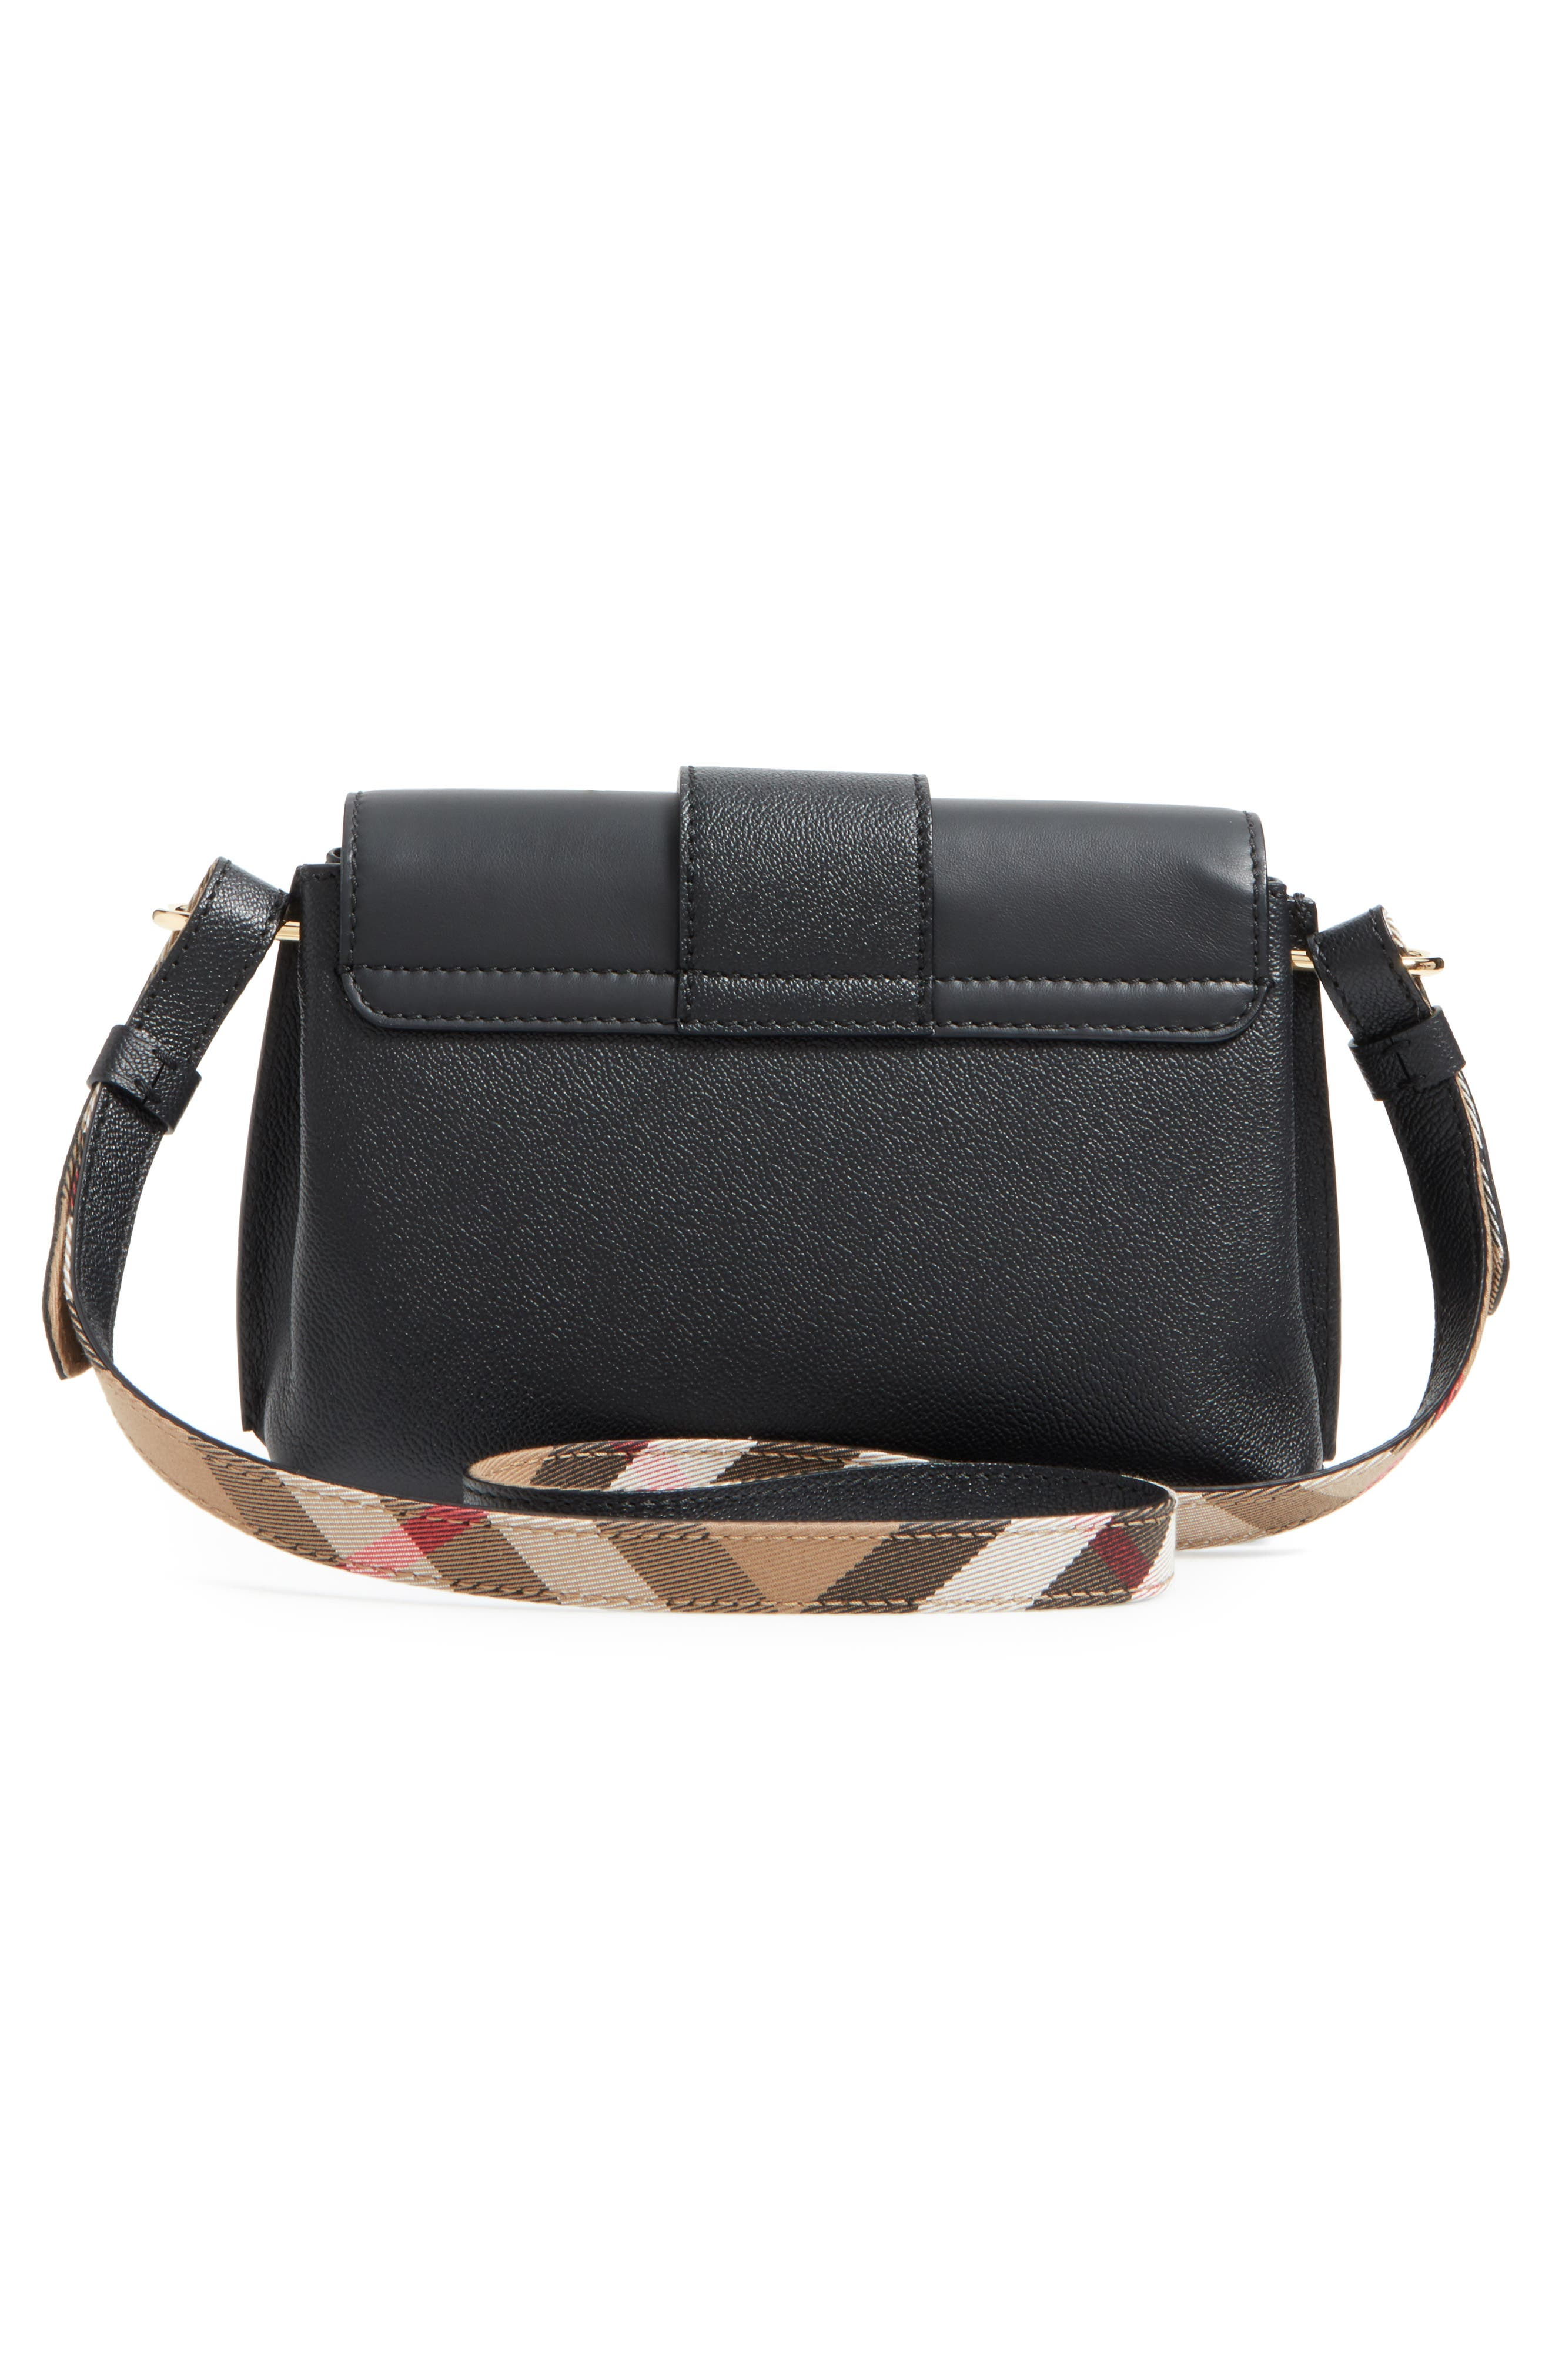 Alternate Image 3  - Burberry Small Medley Leather Crossbody Bag